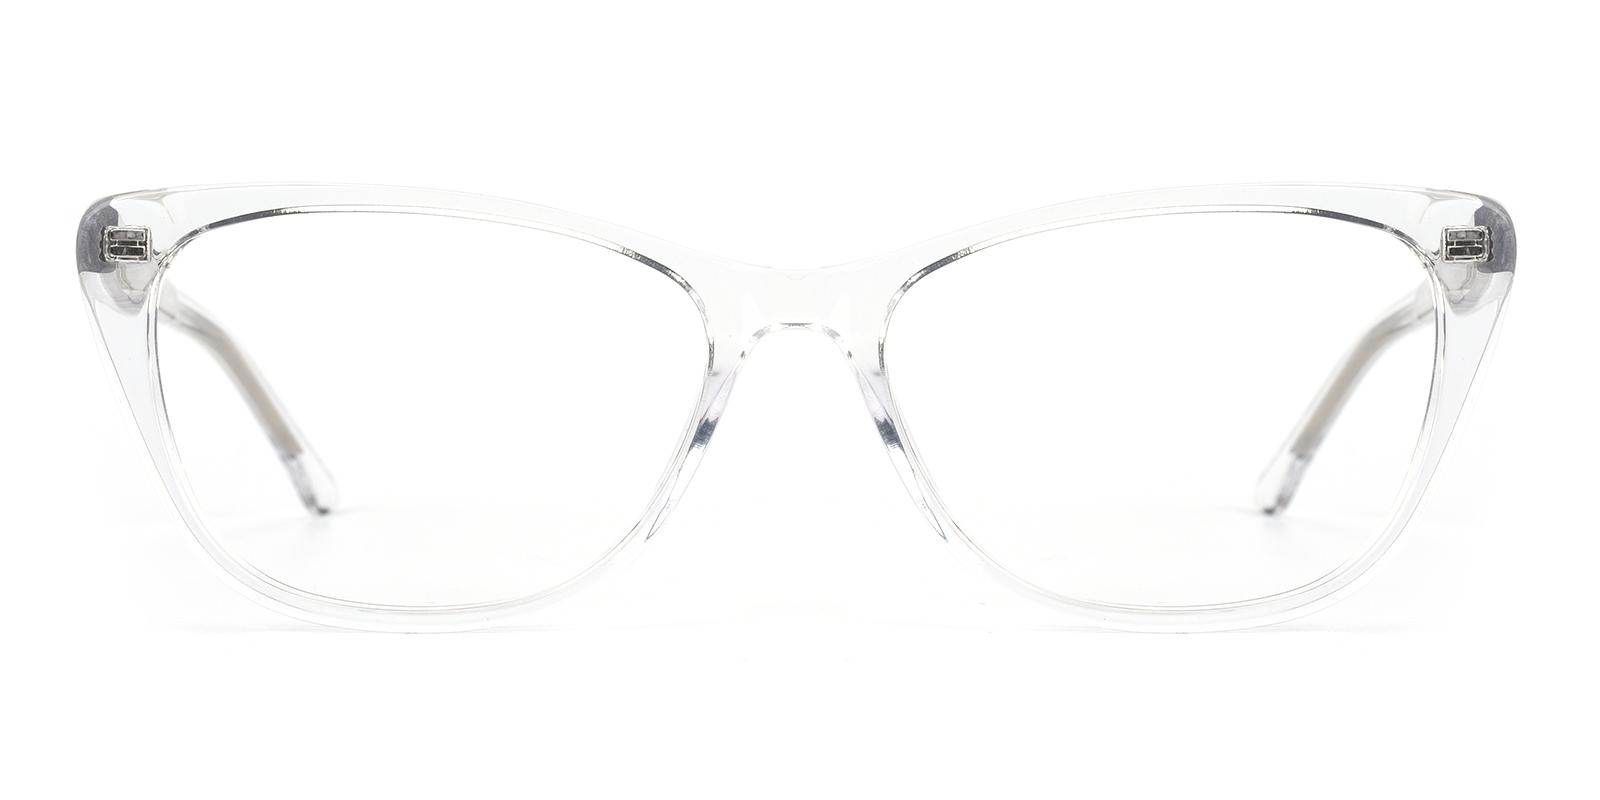 Tersaki-Translucent-Cat-Acetate-Eyeglasses-detail